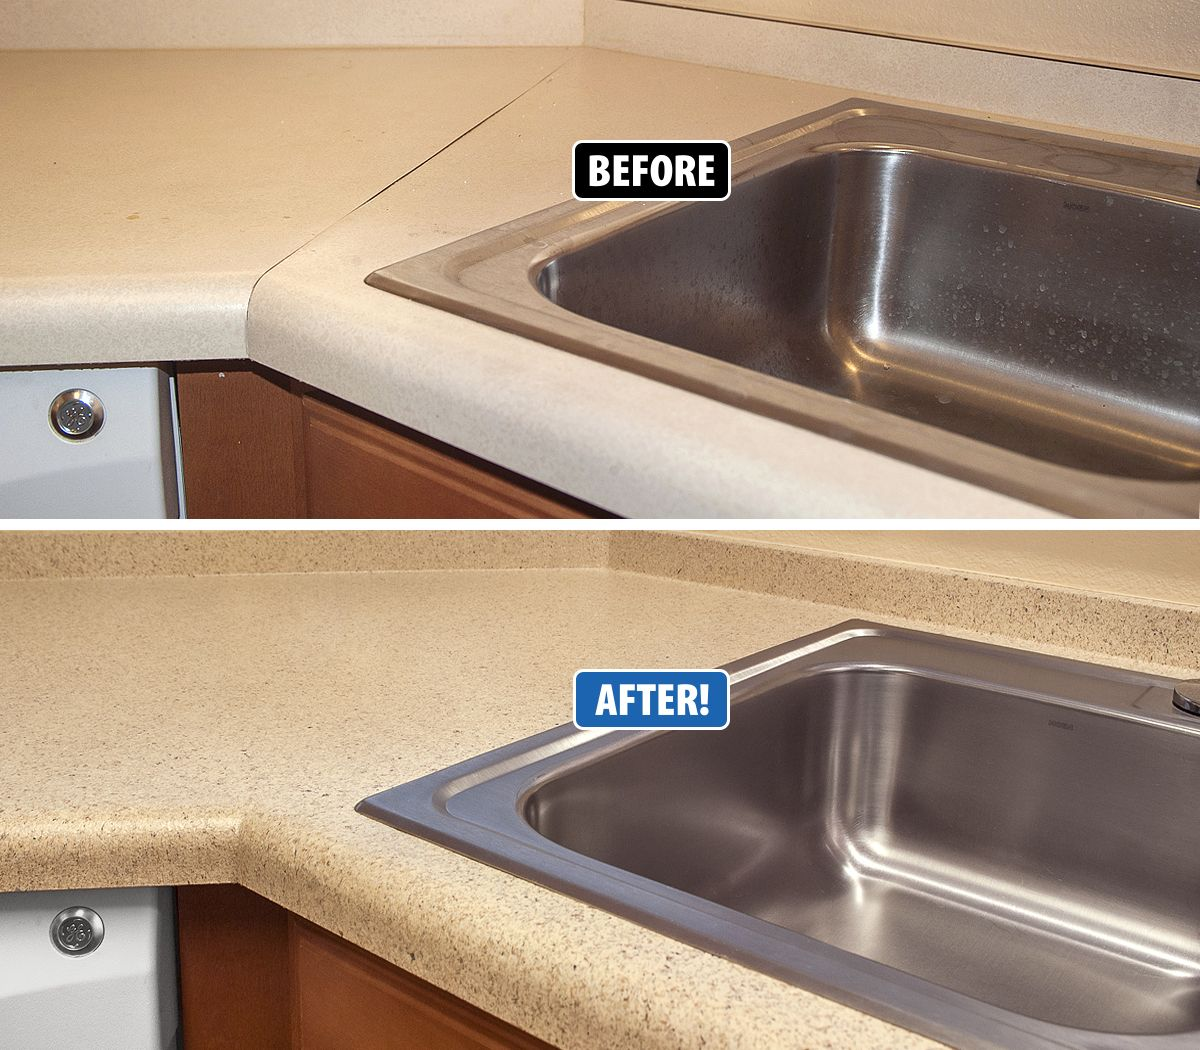 Miracle Method Can Refinish Countertops To Look Brand New Without Tearing Them Out And Tossing Them In A Landfill Refinish Countertops Countertops Home Repairs